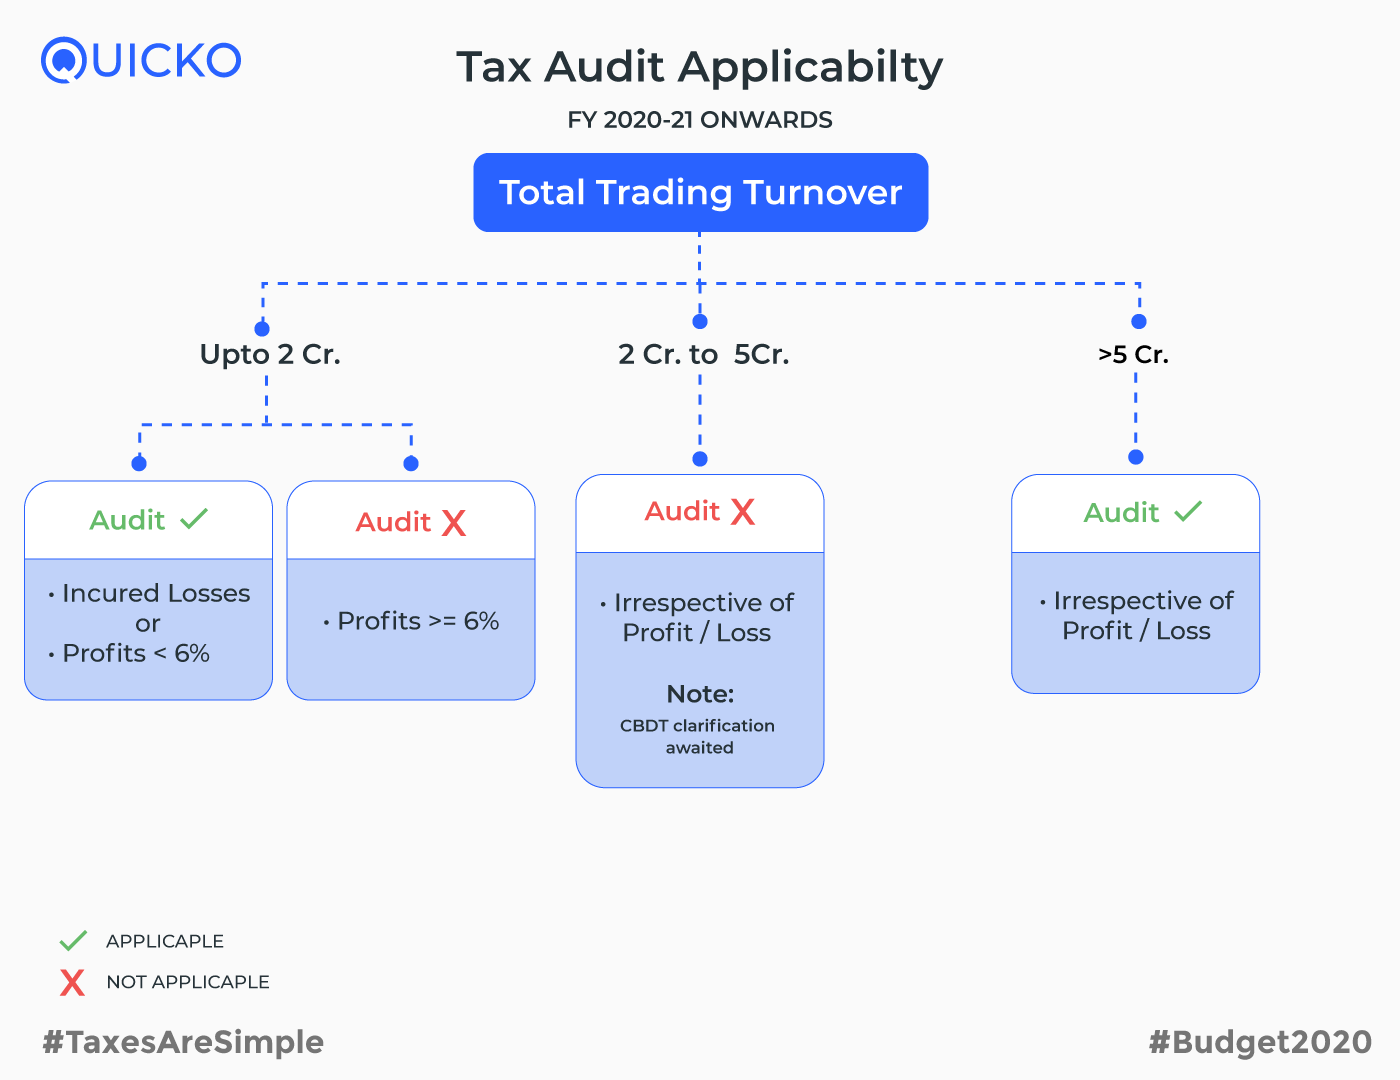 Tax Audit applicability from F.Y 2020-21